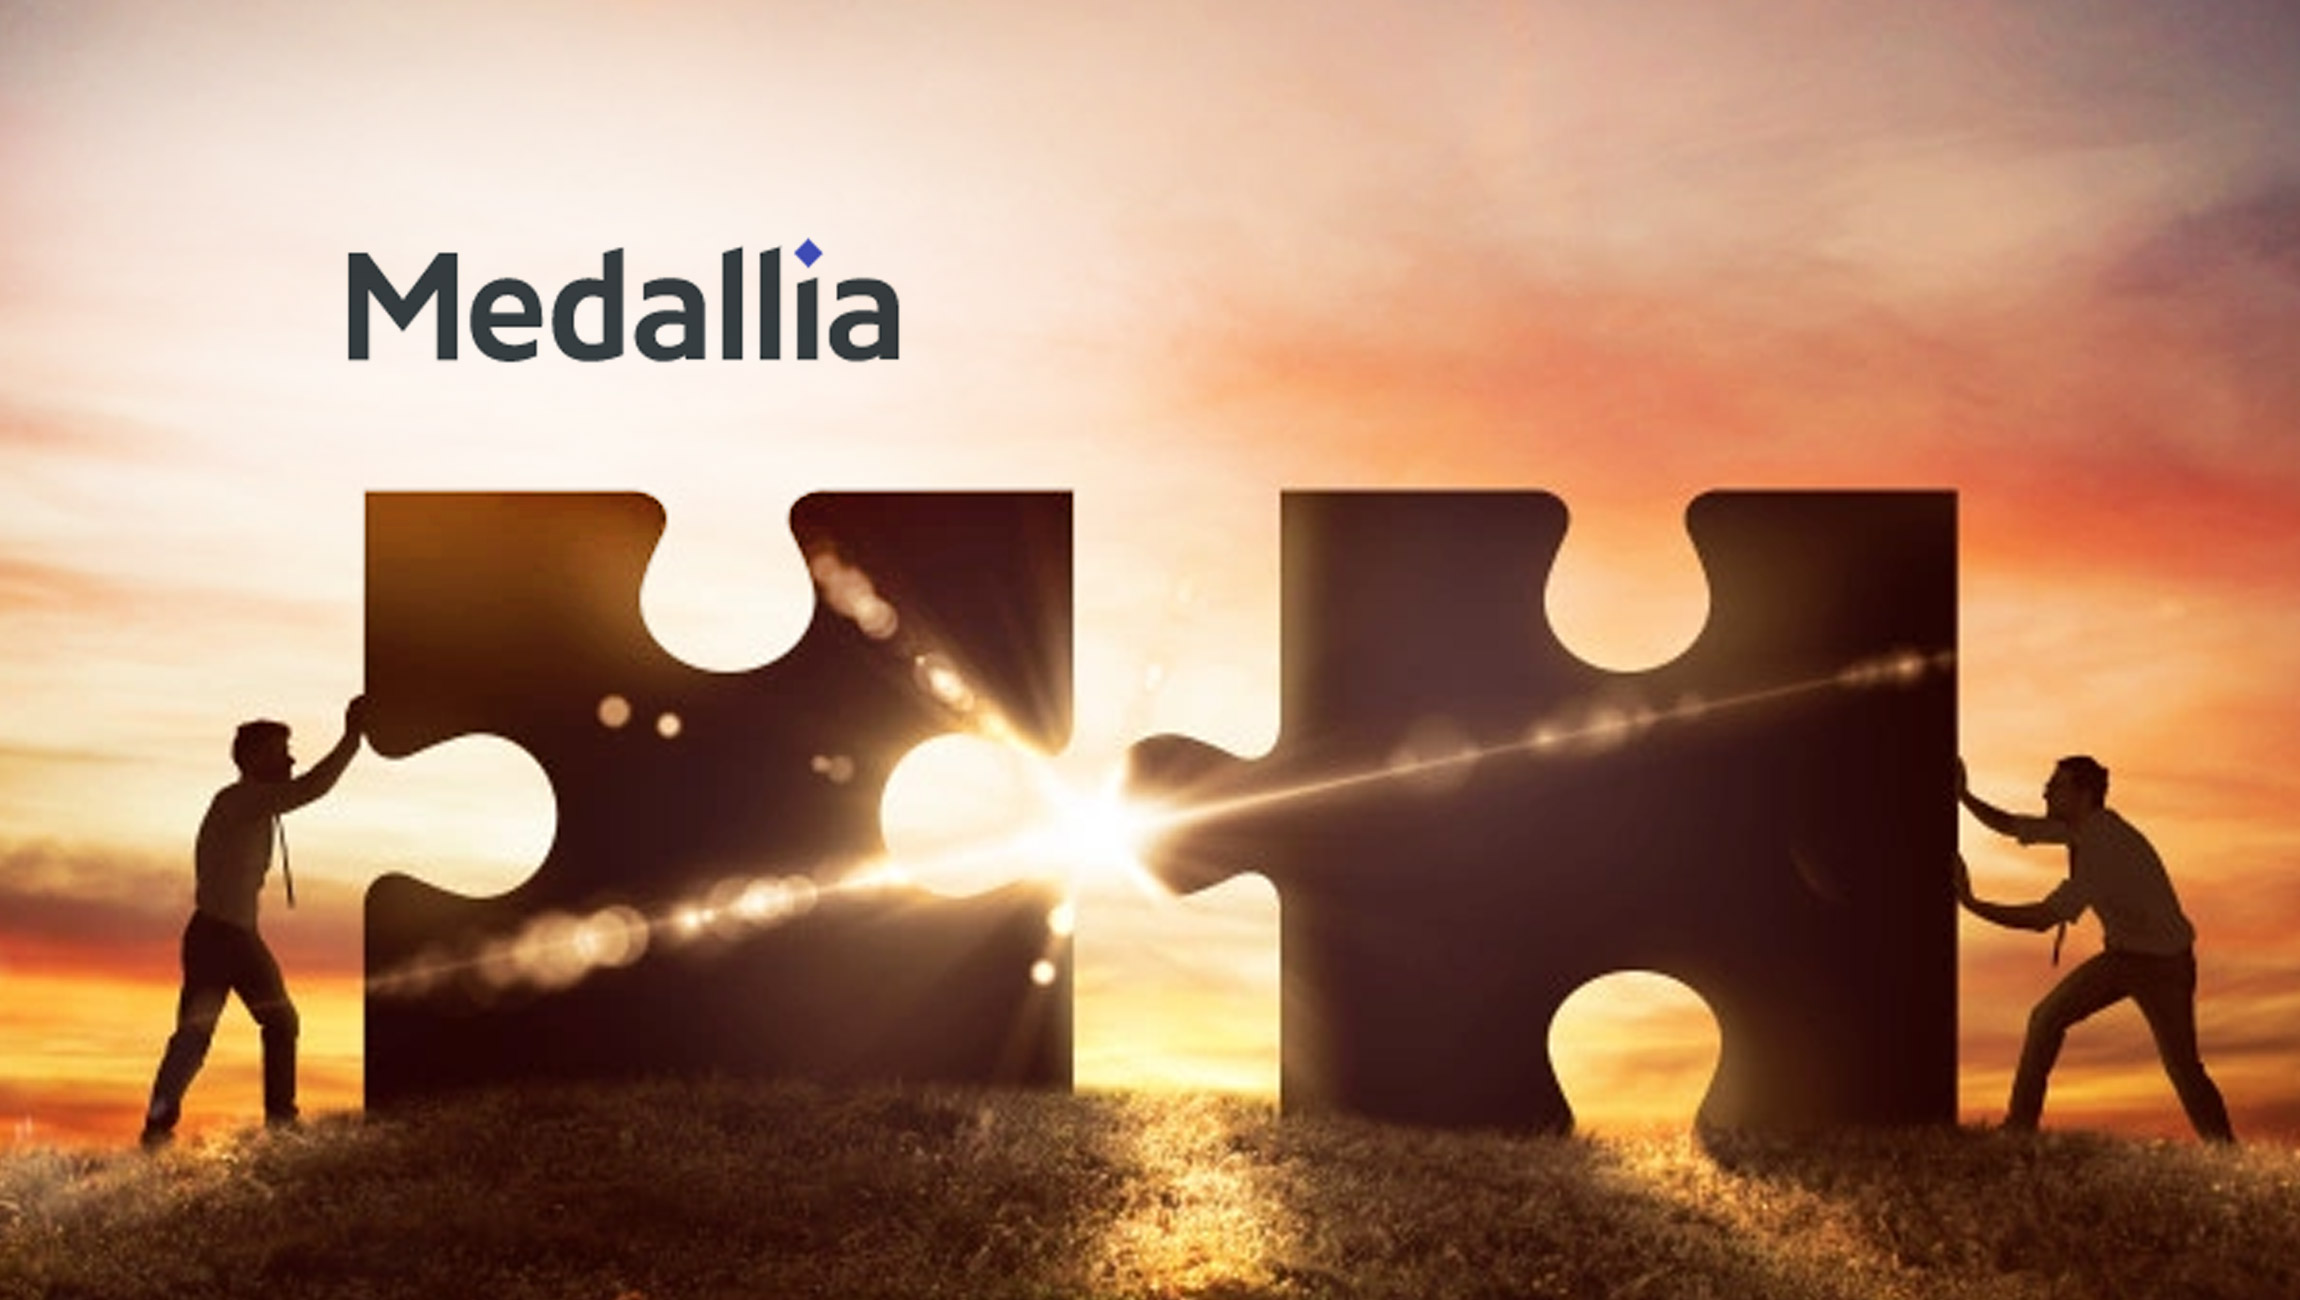 Medallia to be Acquired by Thoma Bravo for $6.4 Billion